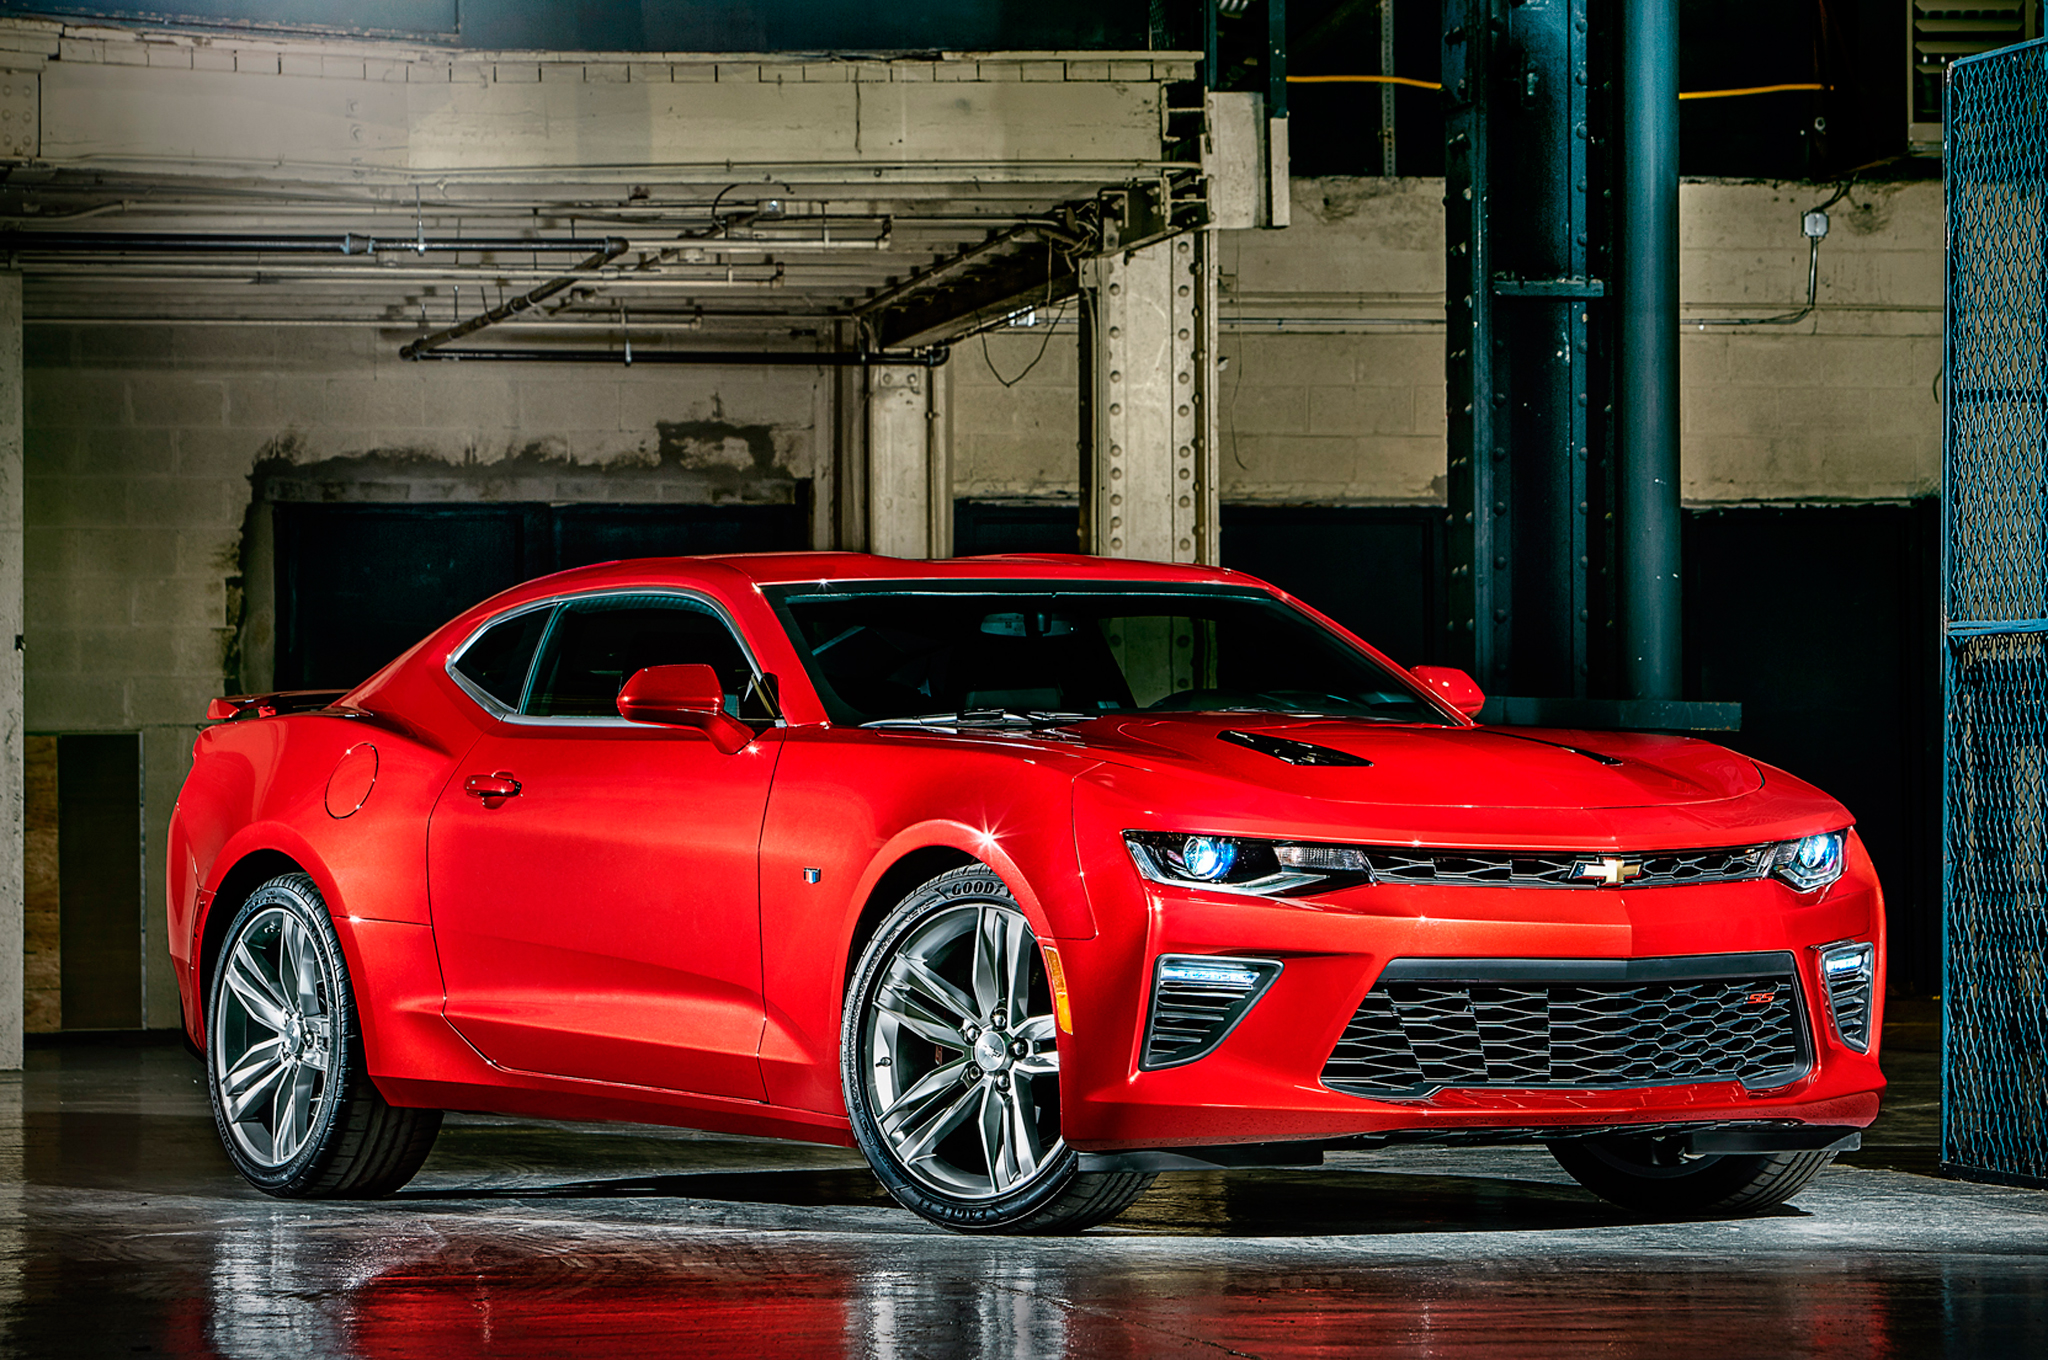 2016 Chevrolet Camaro Ss Exterior Preview (Photo 48 of 54)